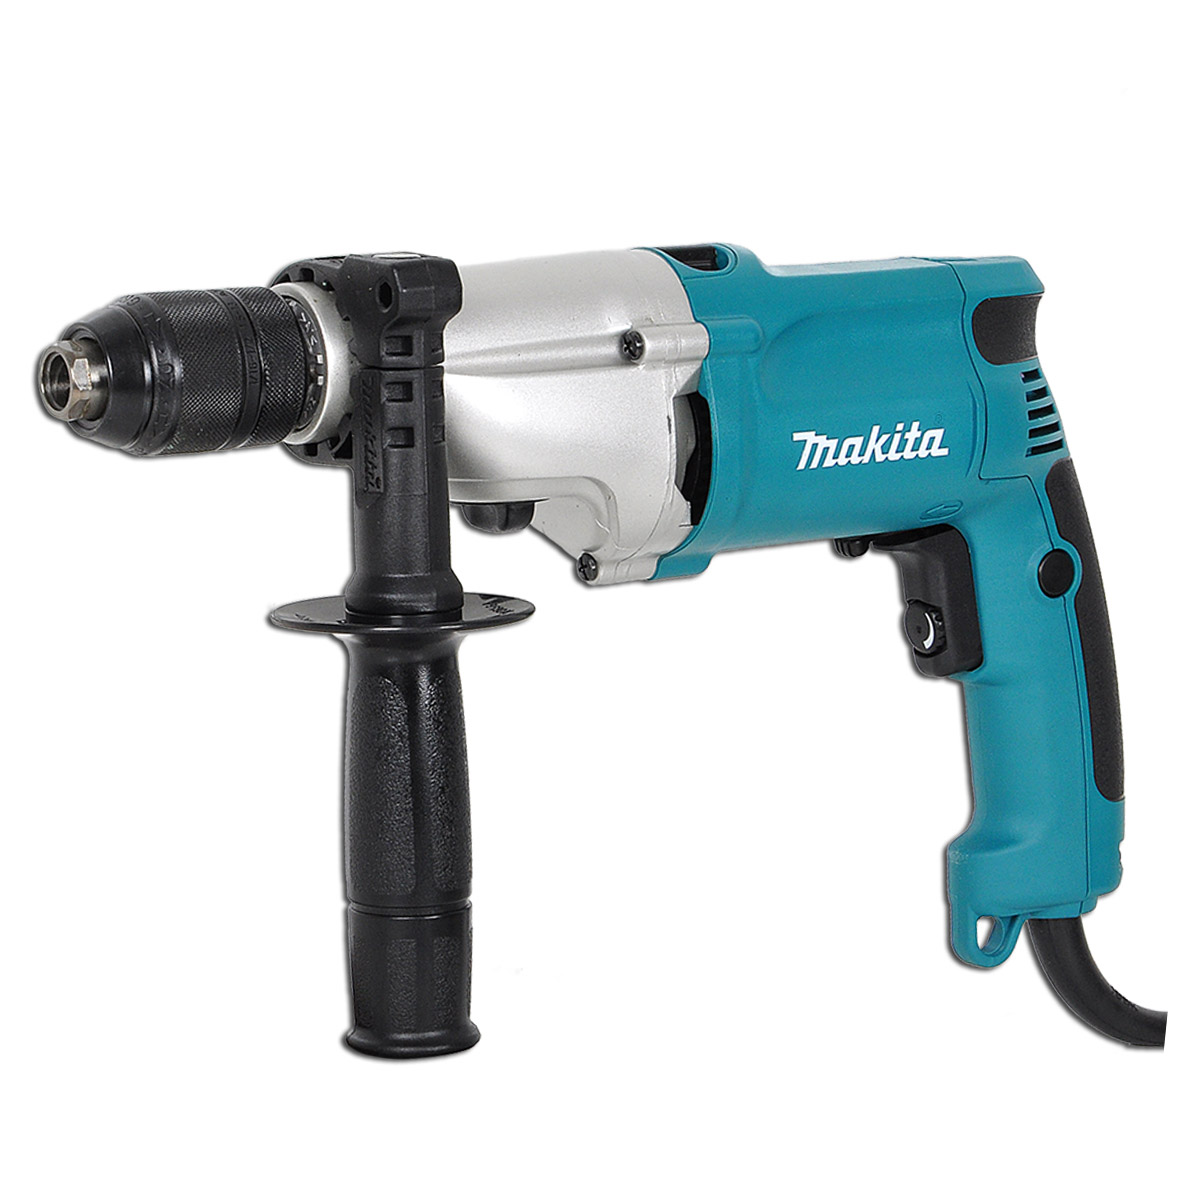 MAKITA HP2051 13MM 720W 2 SPEED PERCUSSION DRILL WITH KEYLESS CHUCK 110V